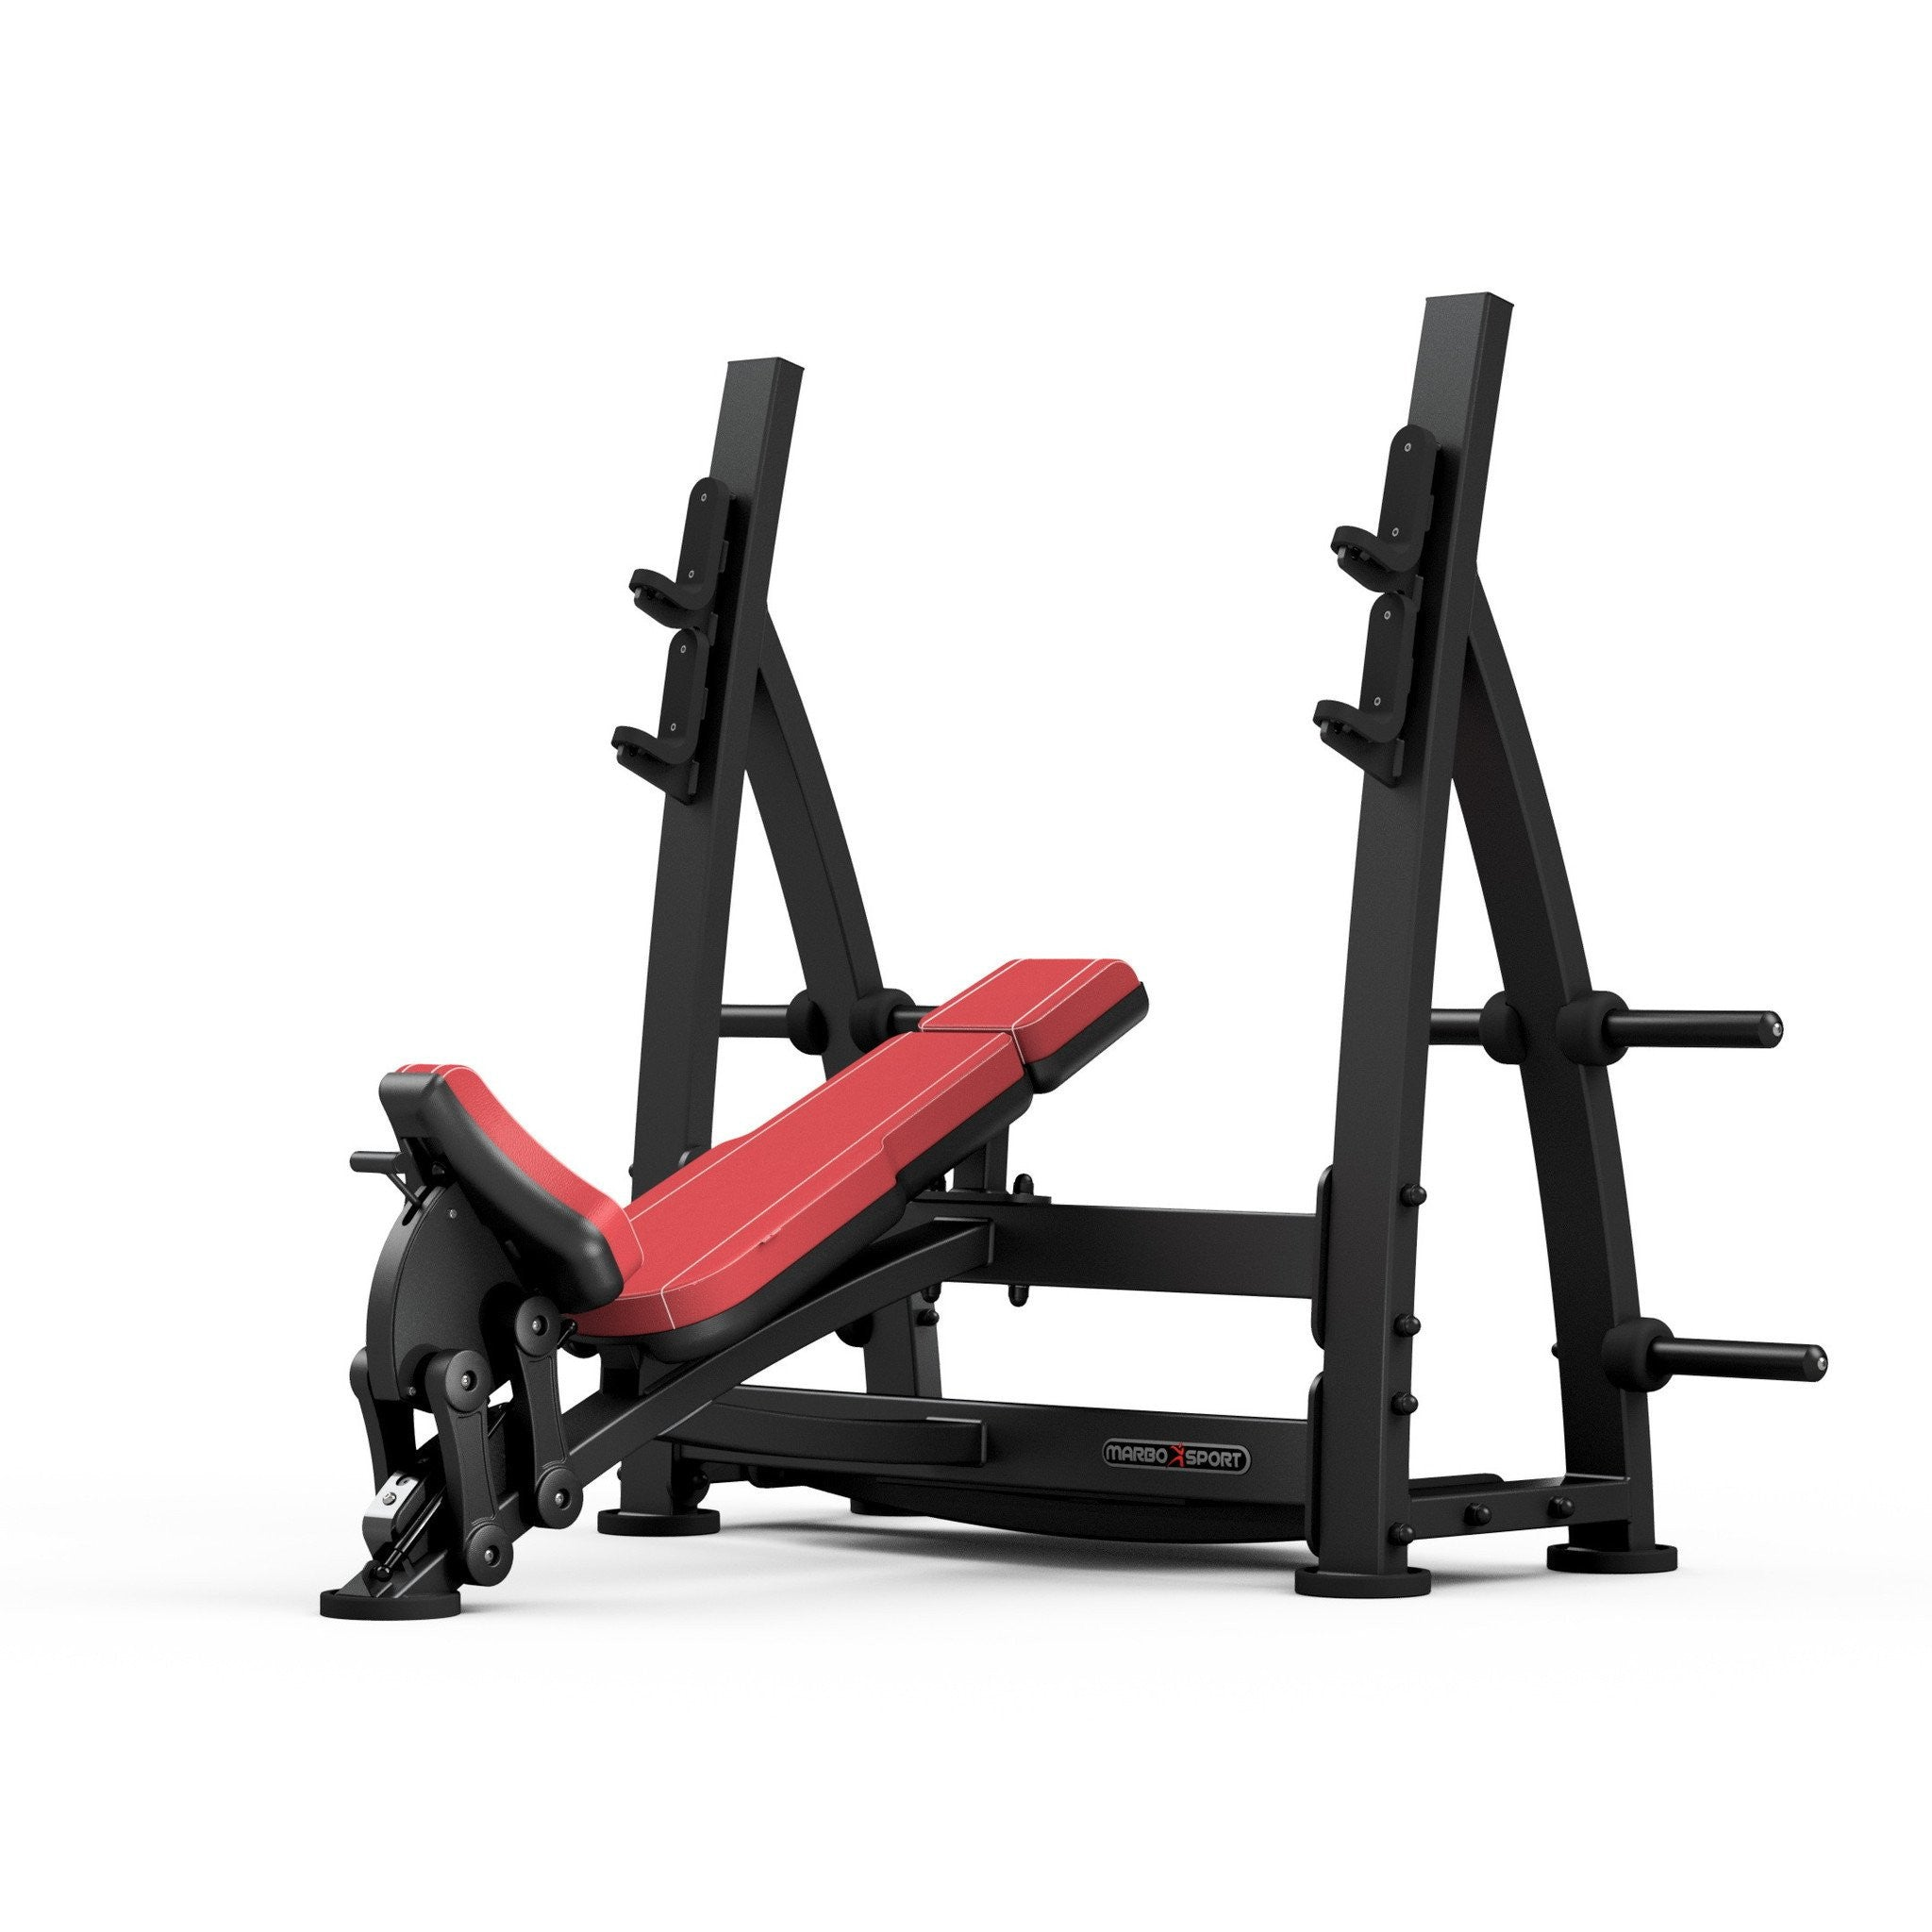 collections adjustable by with and from made press sport multifunctional fixed shop fitness sports flat authority azfitnessequipmentcom racks bench olympic equipment weight marbo benches gym